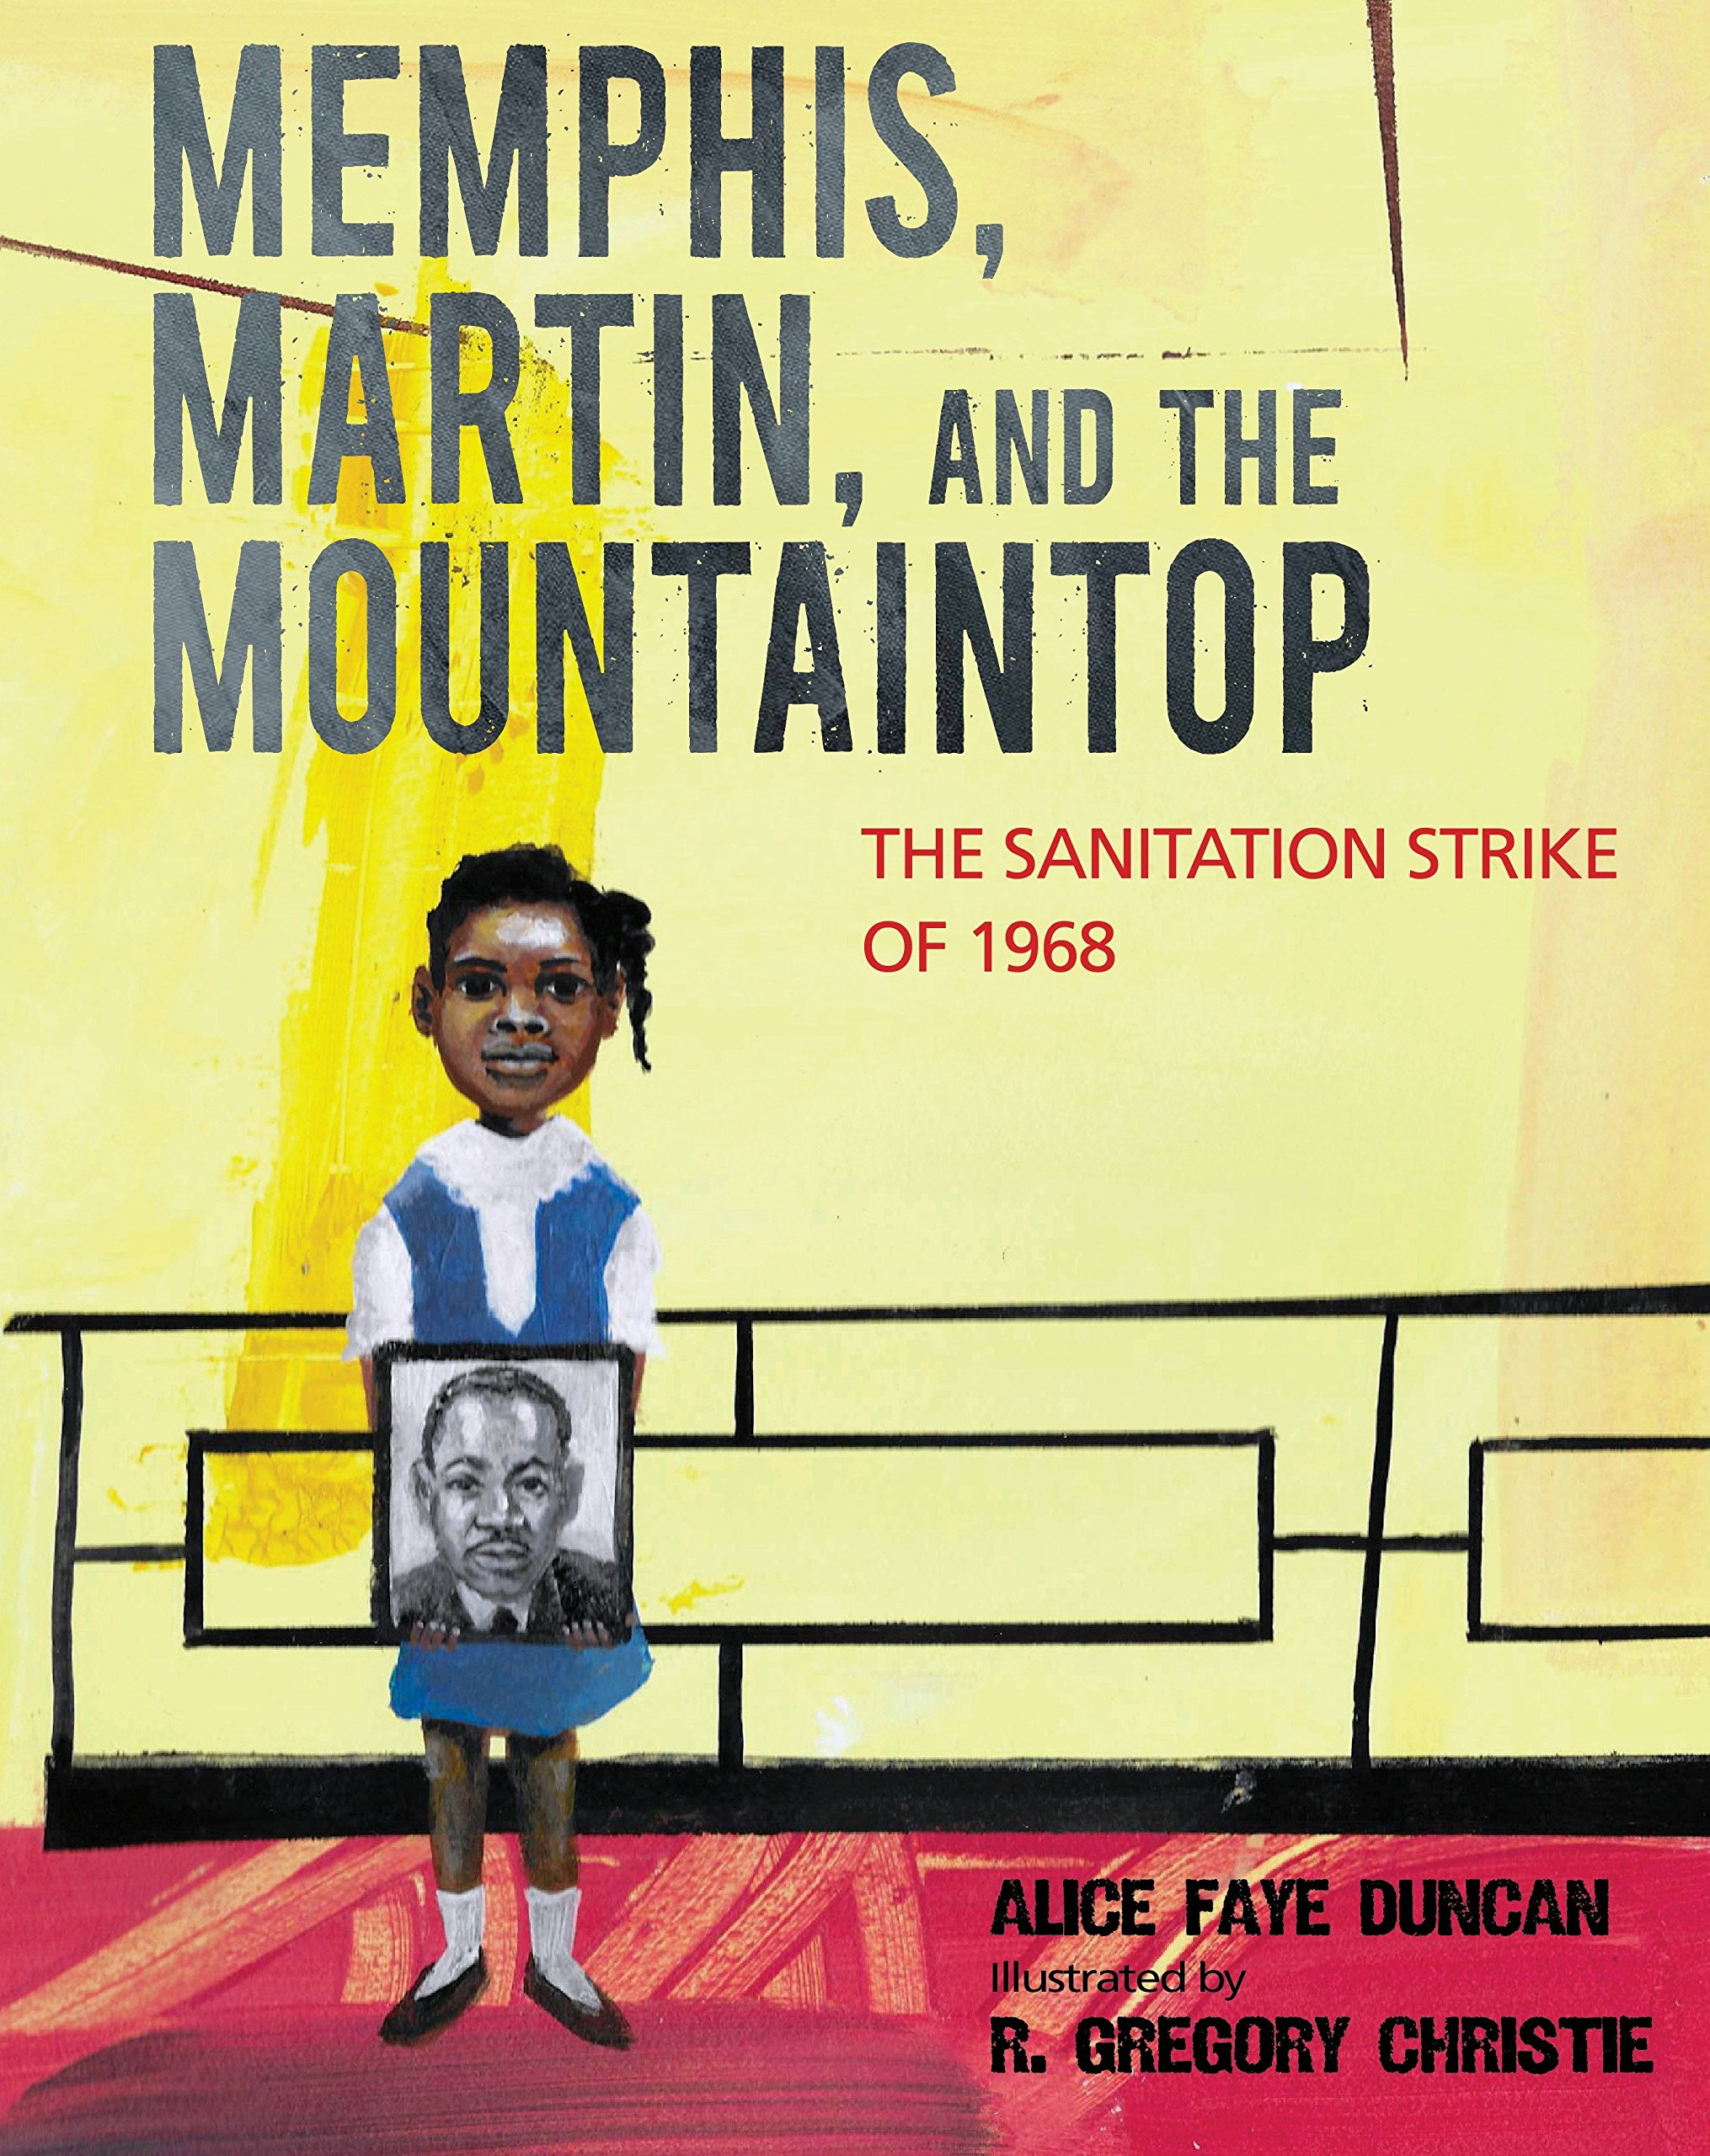 Memphis, Martin, and the Mountaintop: The Sanitation Strike of 1968